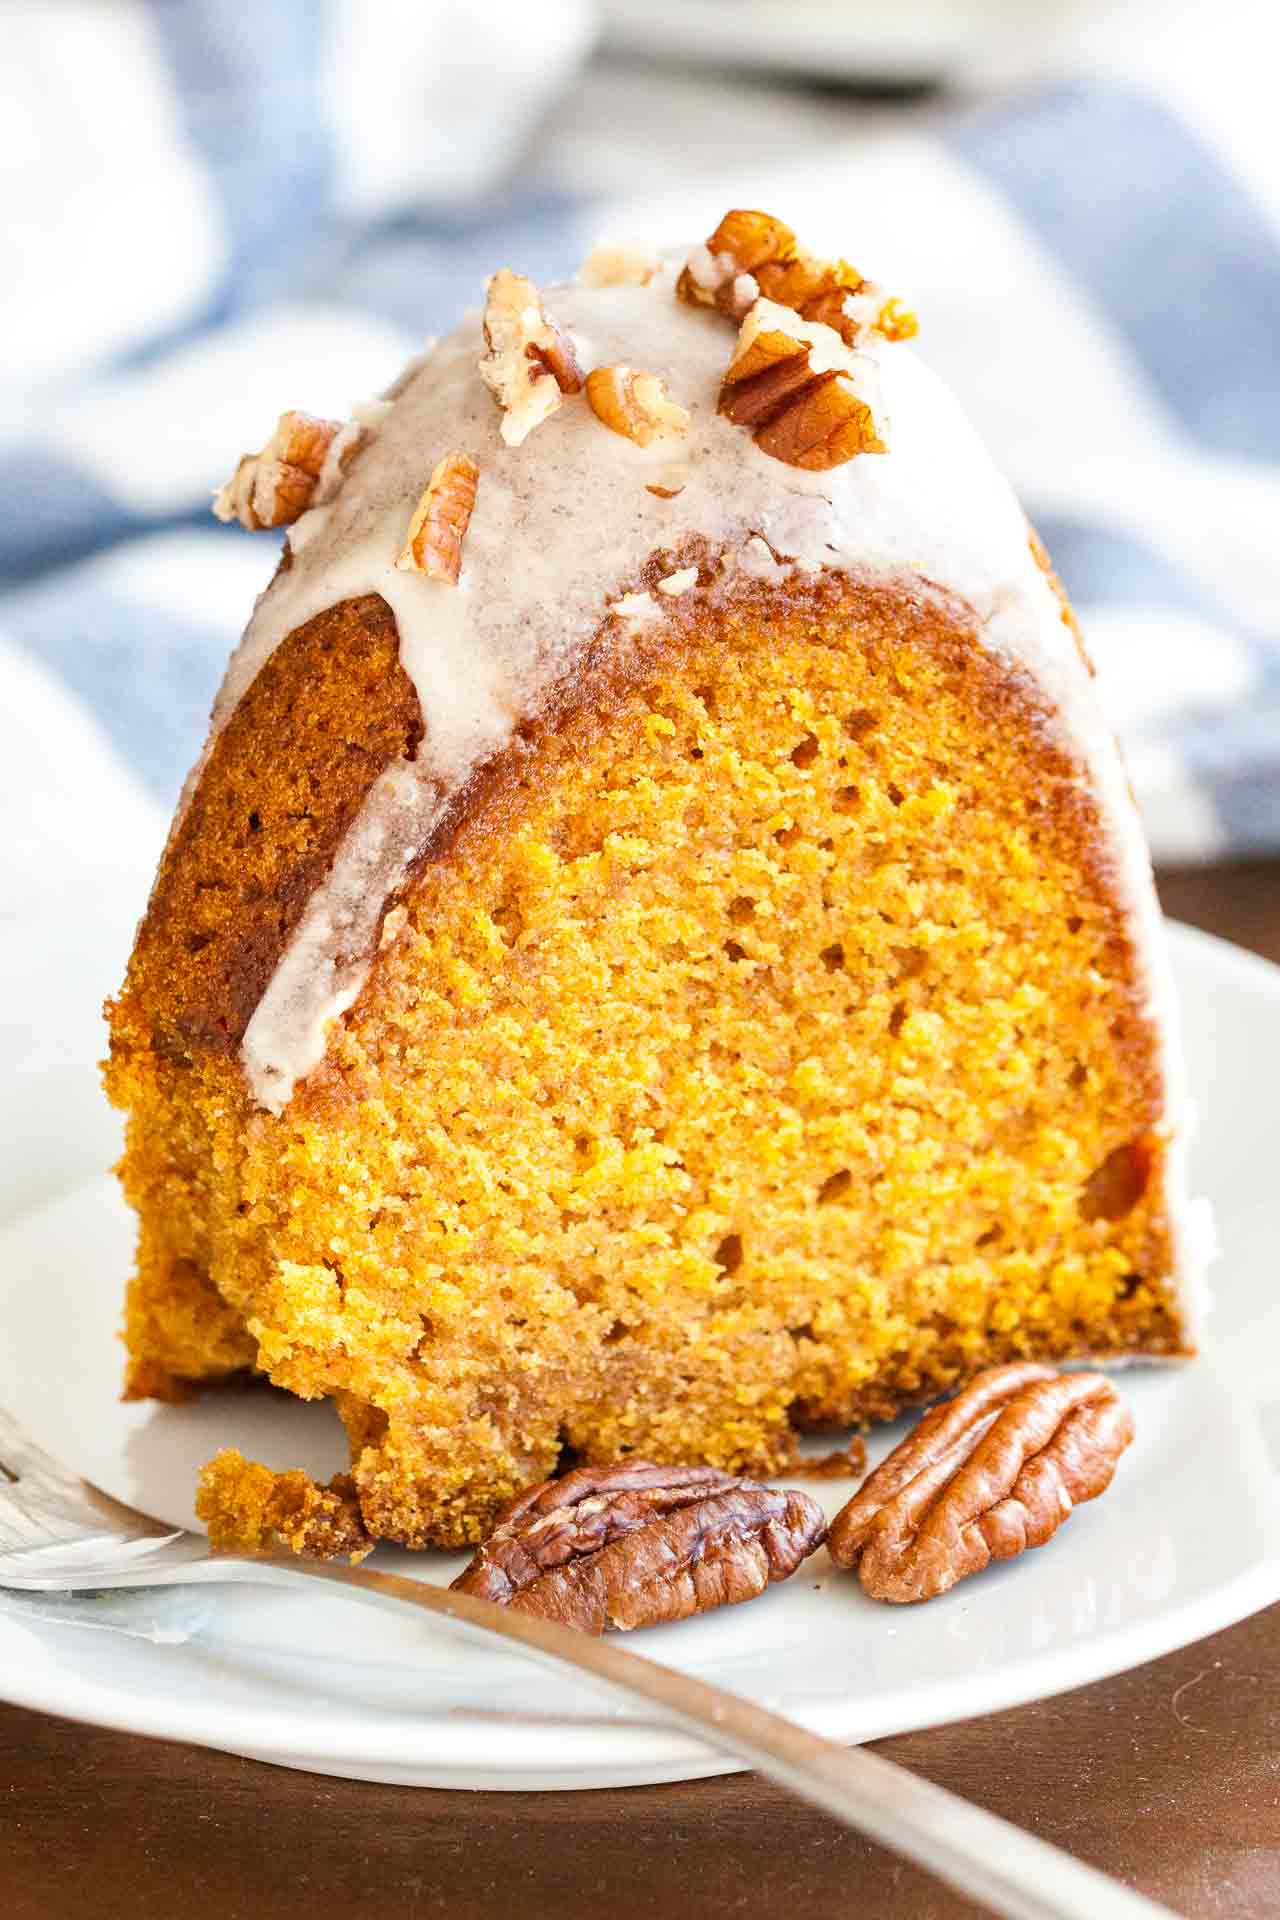 "This Pumpkin Bundt Cake is super moist and topped with a maple glaze and toasted pecans! A perfect dessert for the holidays that ""wow's"" and is easy enough to make even if you aren't totally kitchen confident."